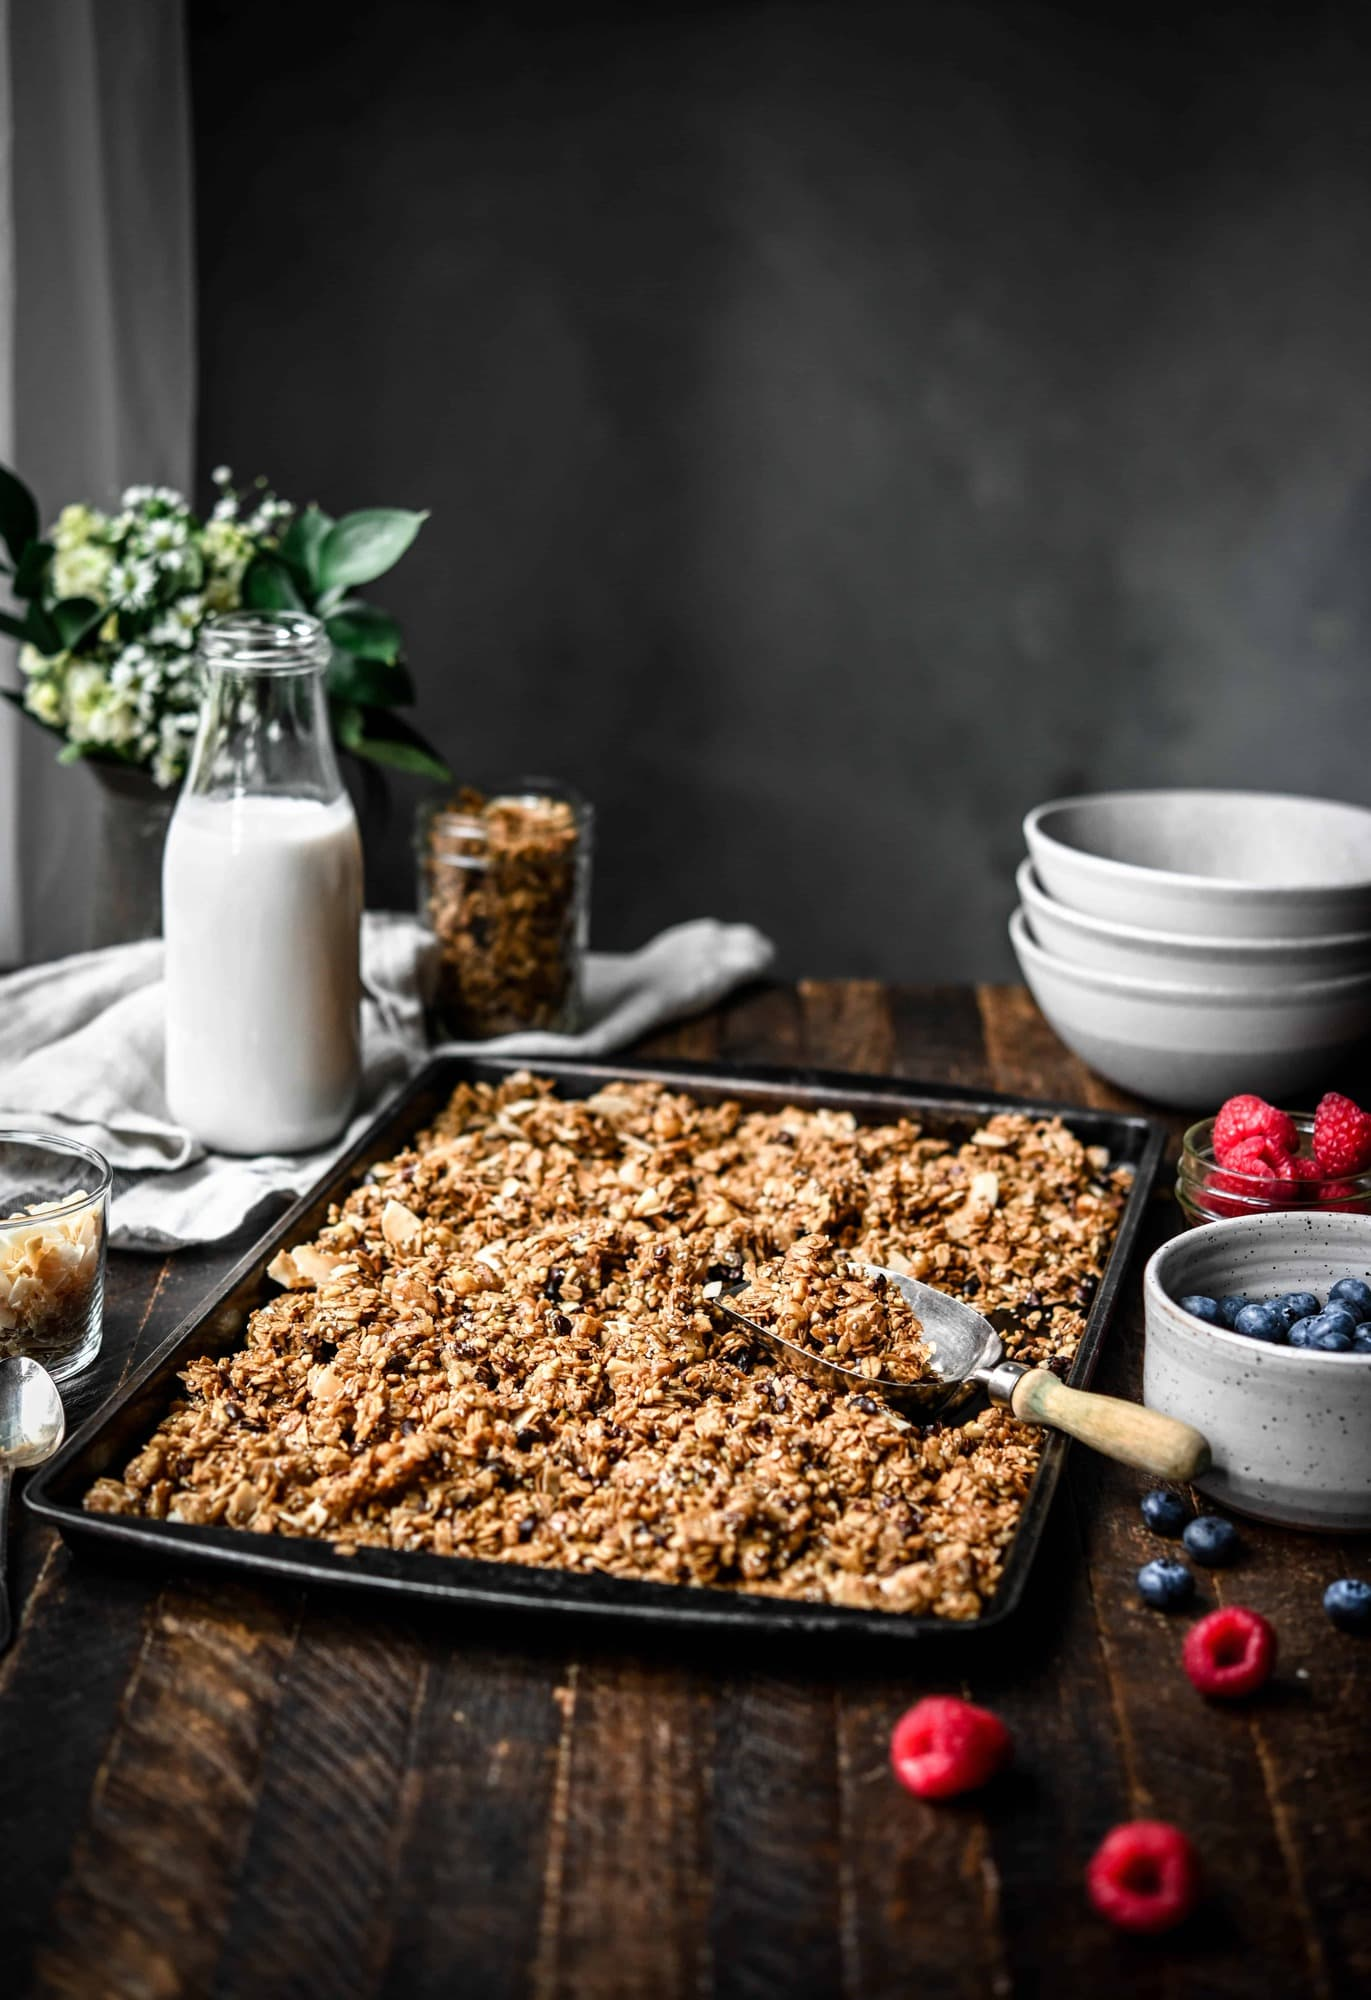 Side view of a baking sheet with granola and a scoop on a wood table with greenery in background